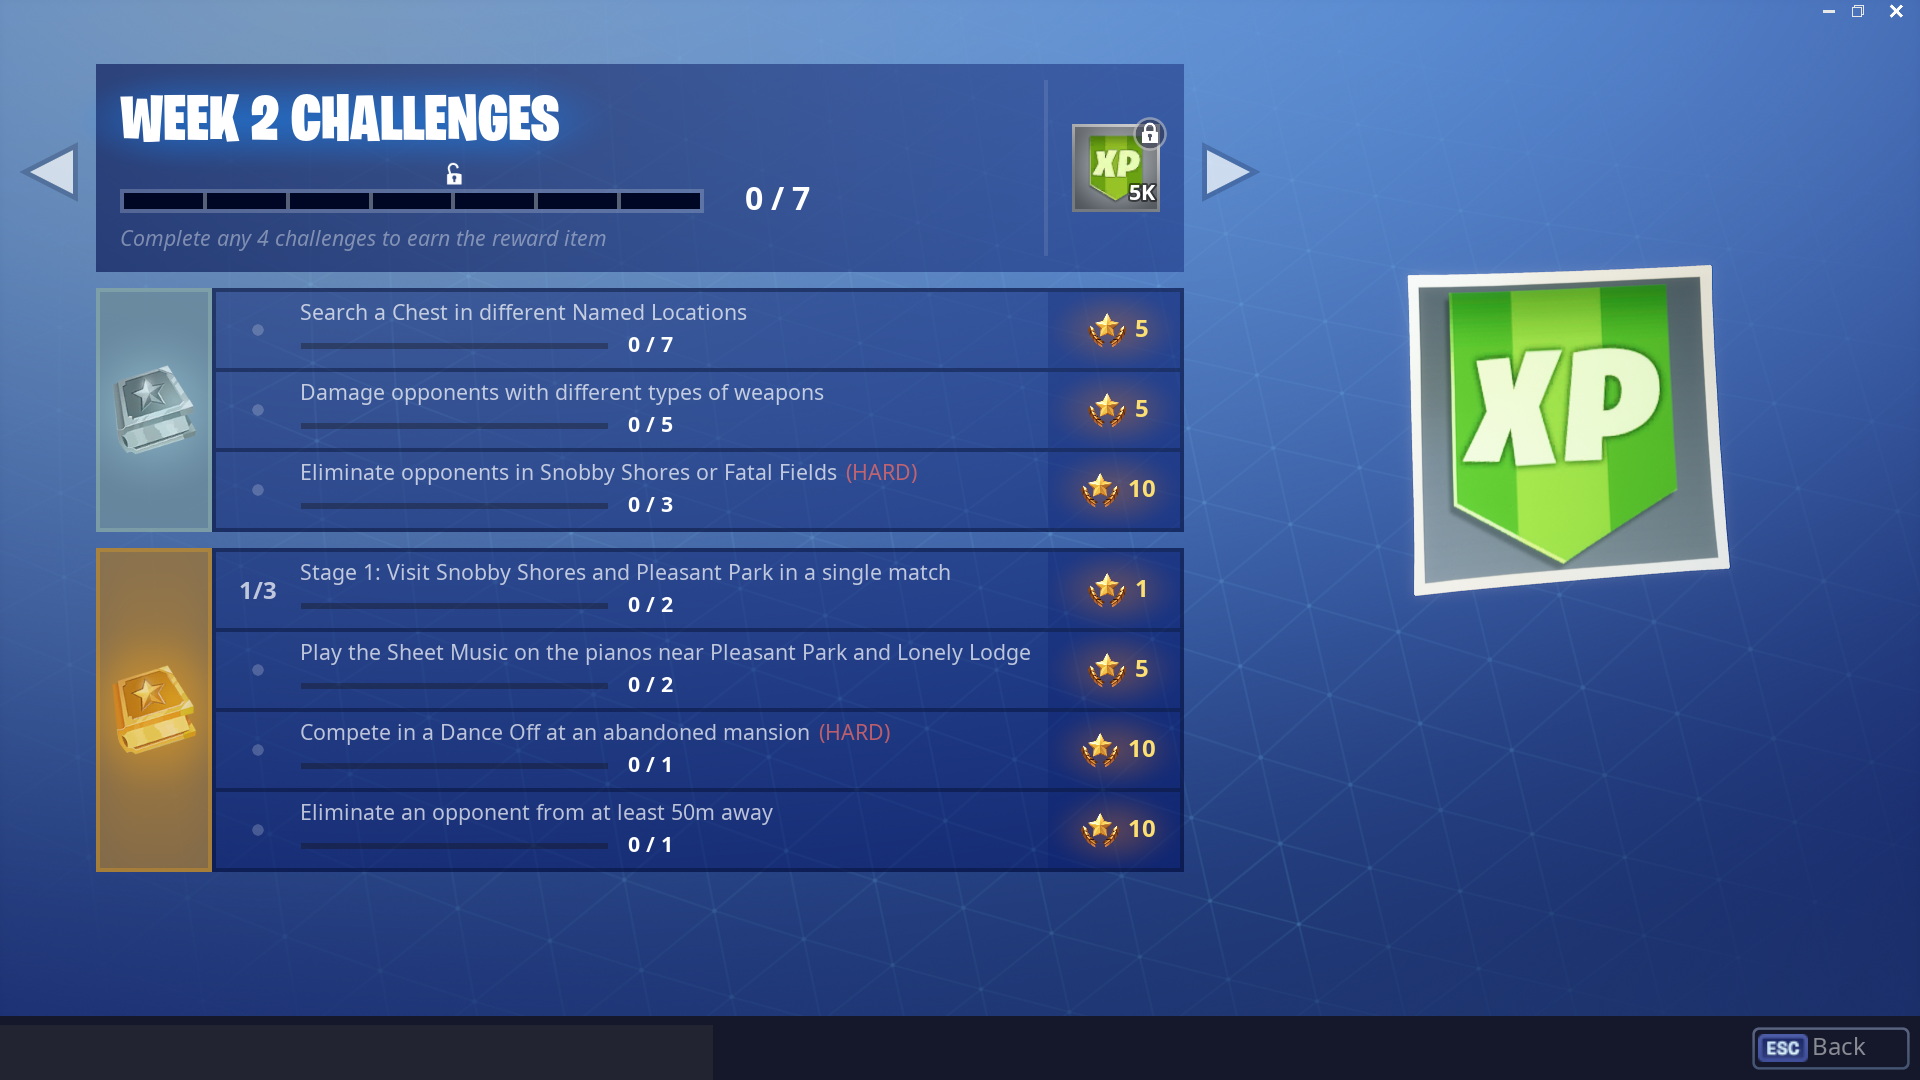 Battle Pass Challenges And Solutions For Week 2 Season 7 Of